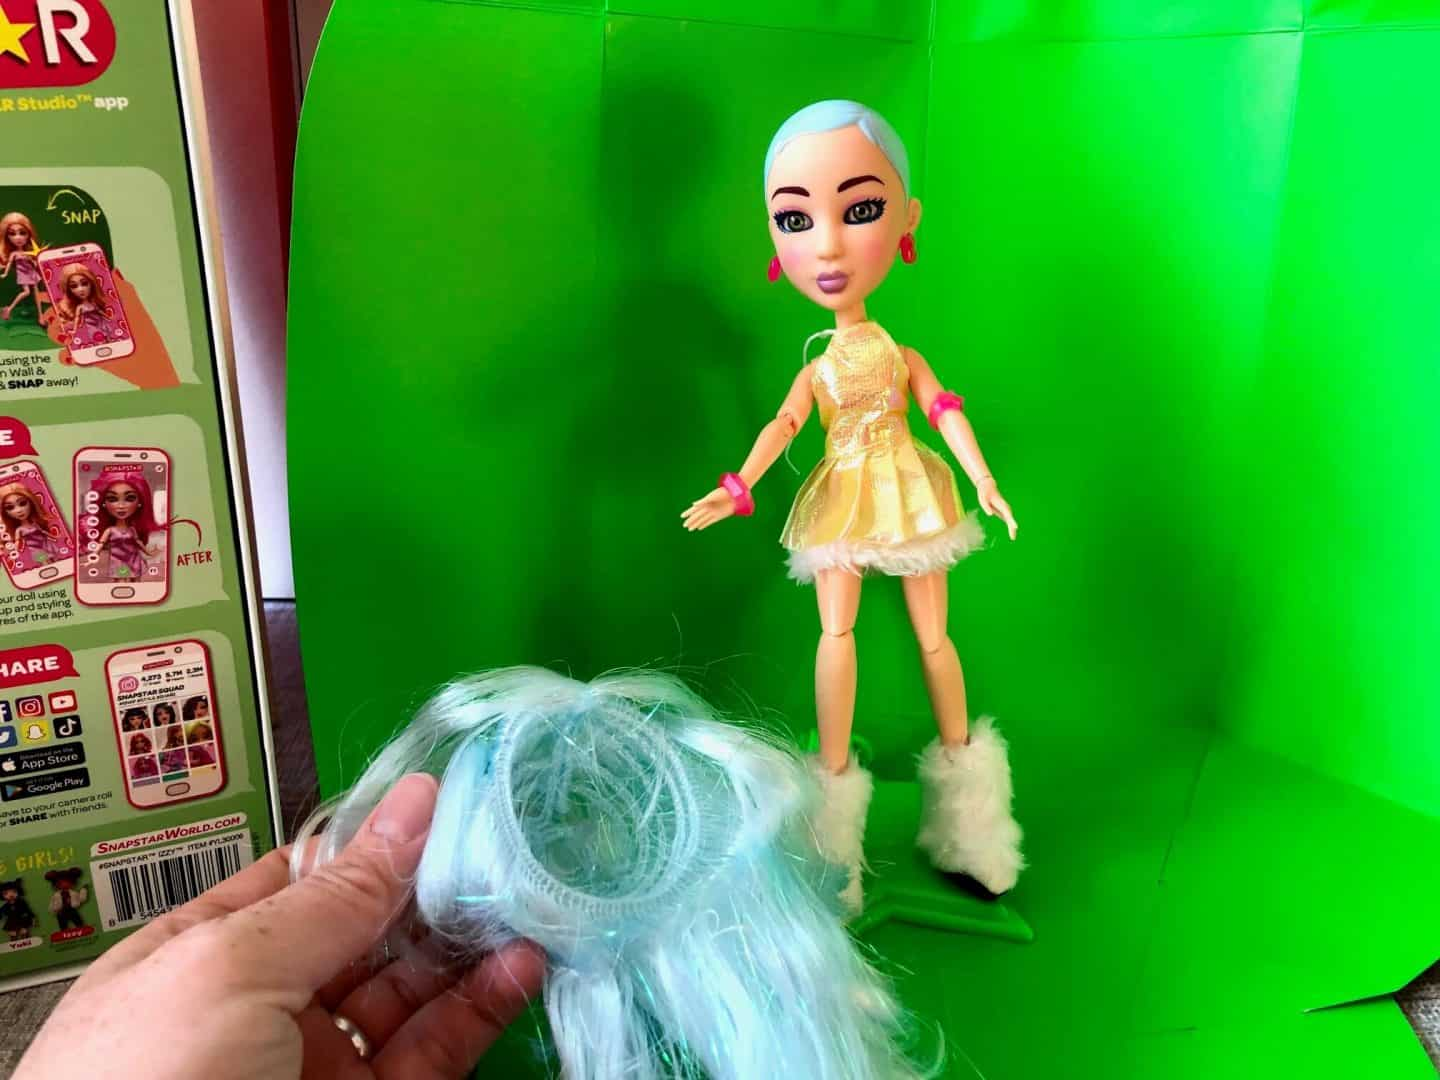 Removing hair from SNAPSTAR doll